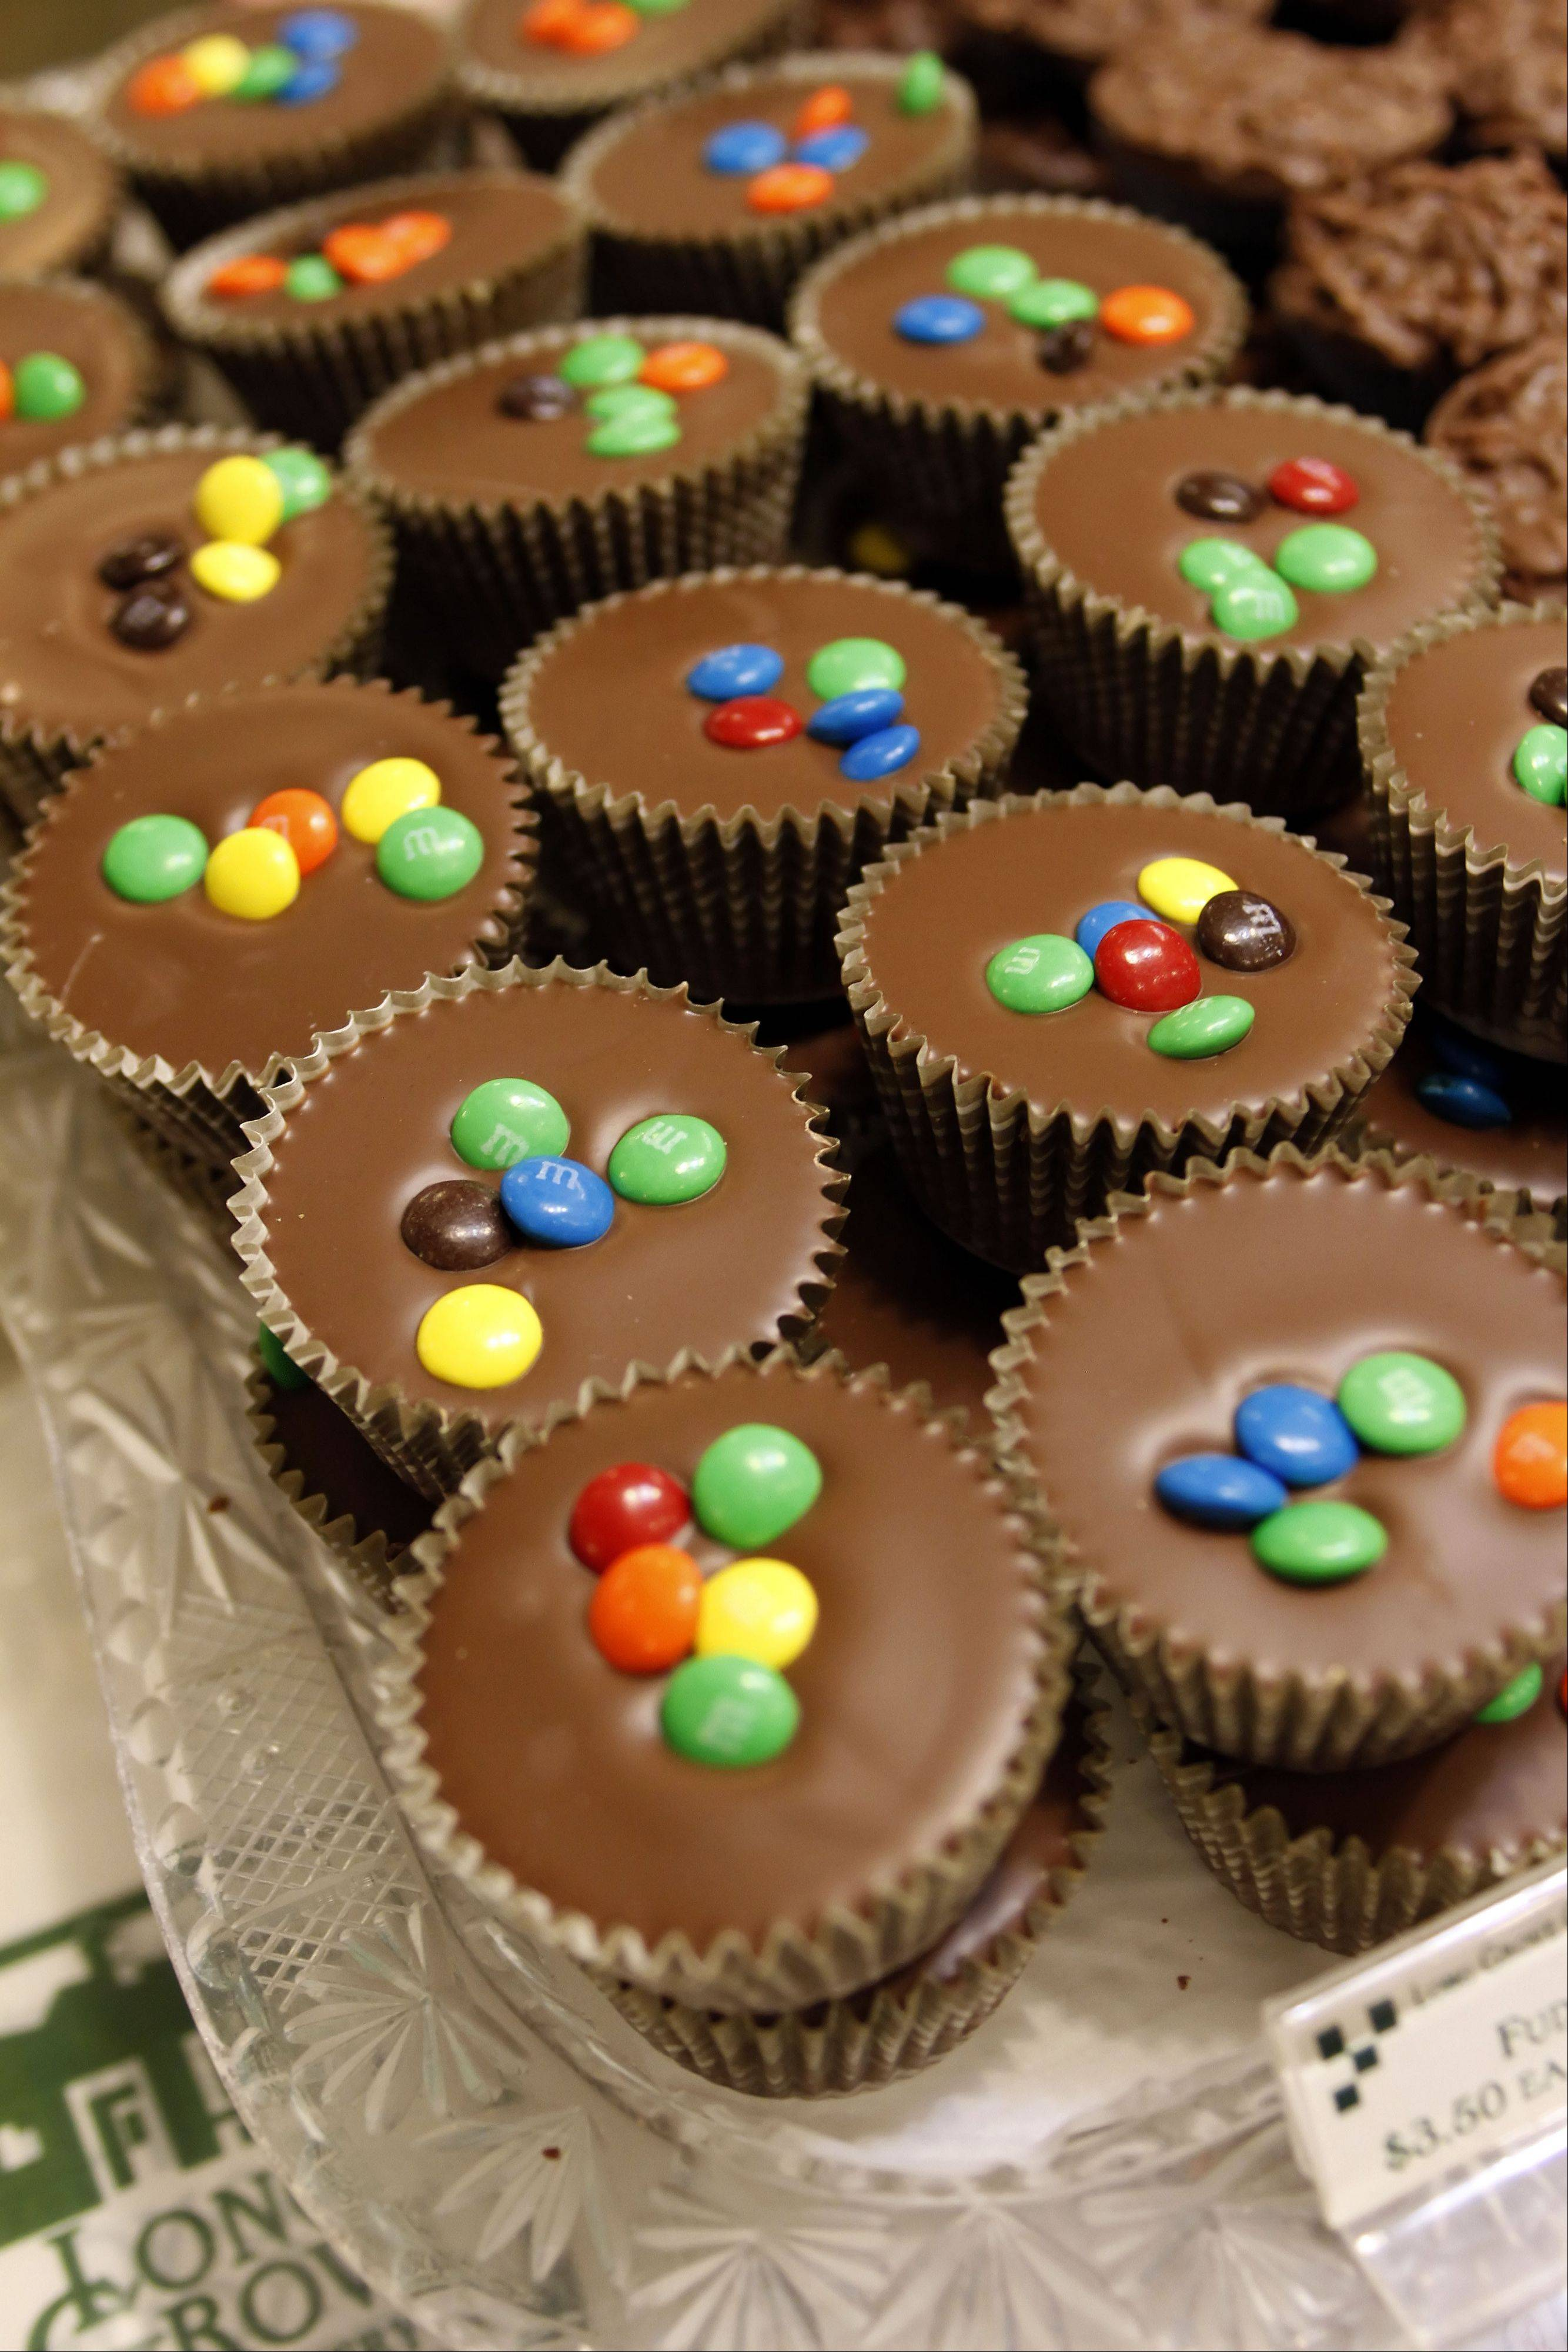 These fudge cups topped with M&M's are an example of the products for sale at the Long Grove Confectionery store in downtown Long Grove.